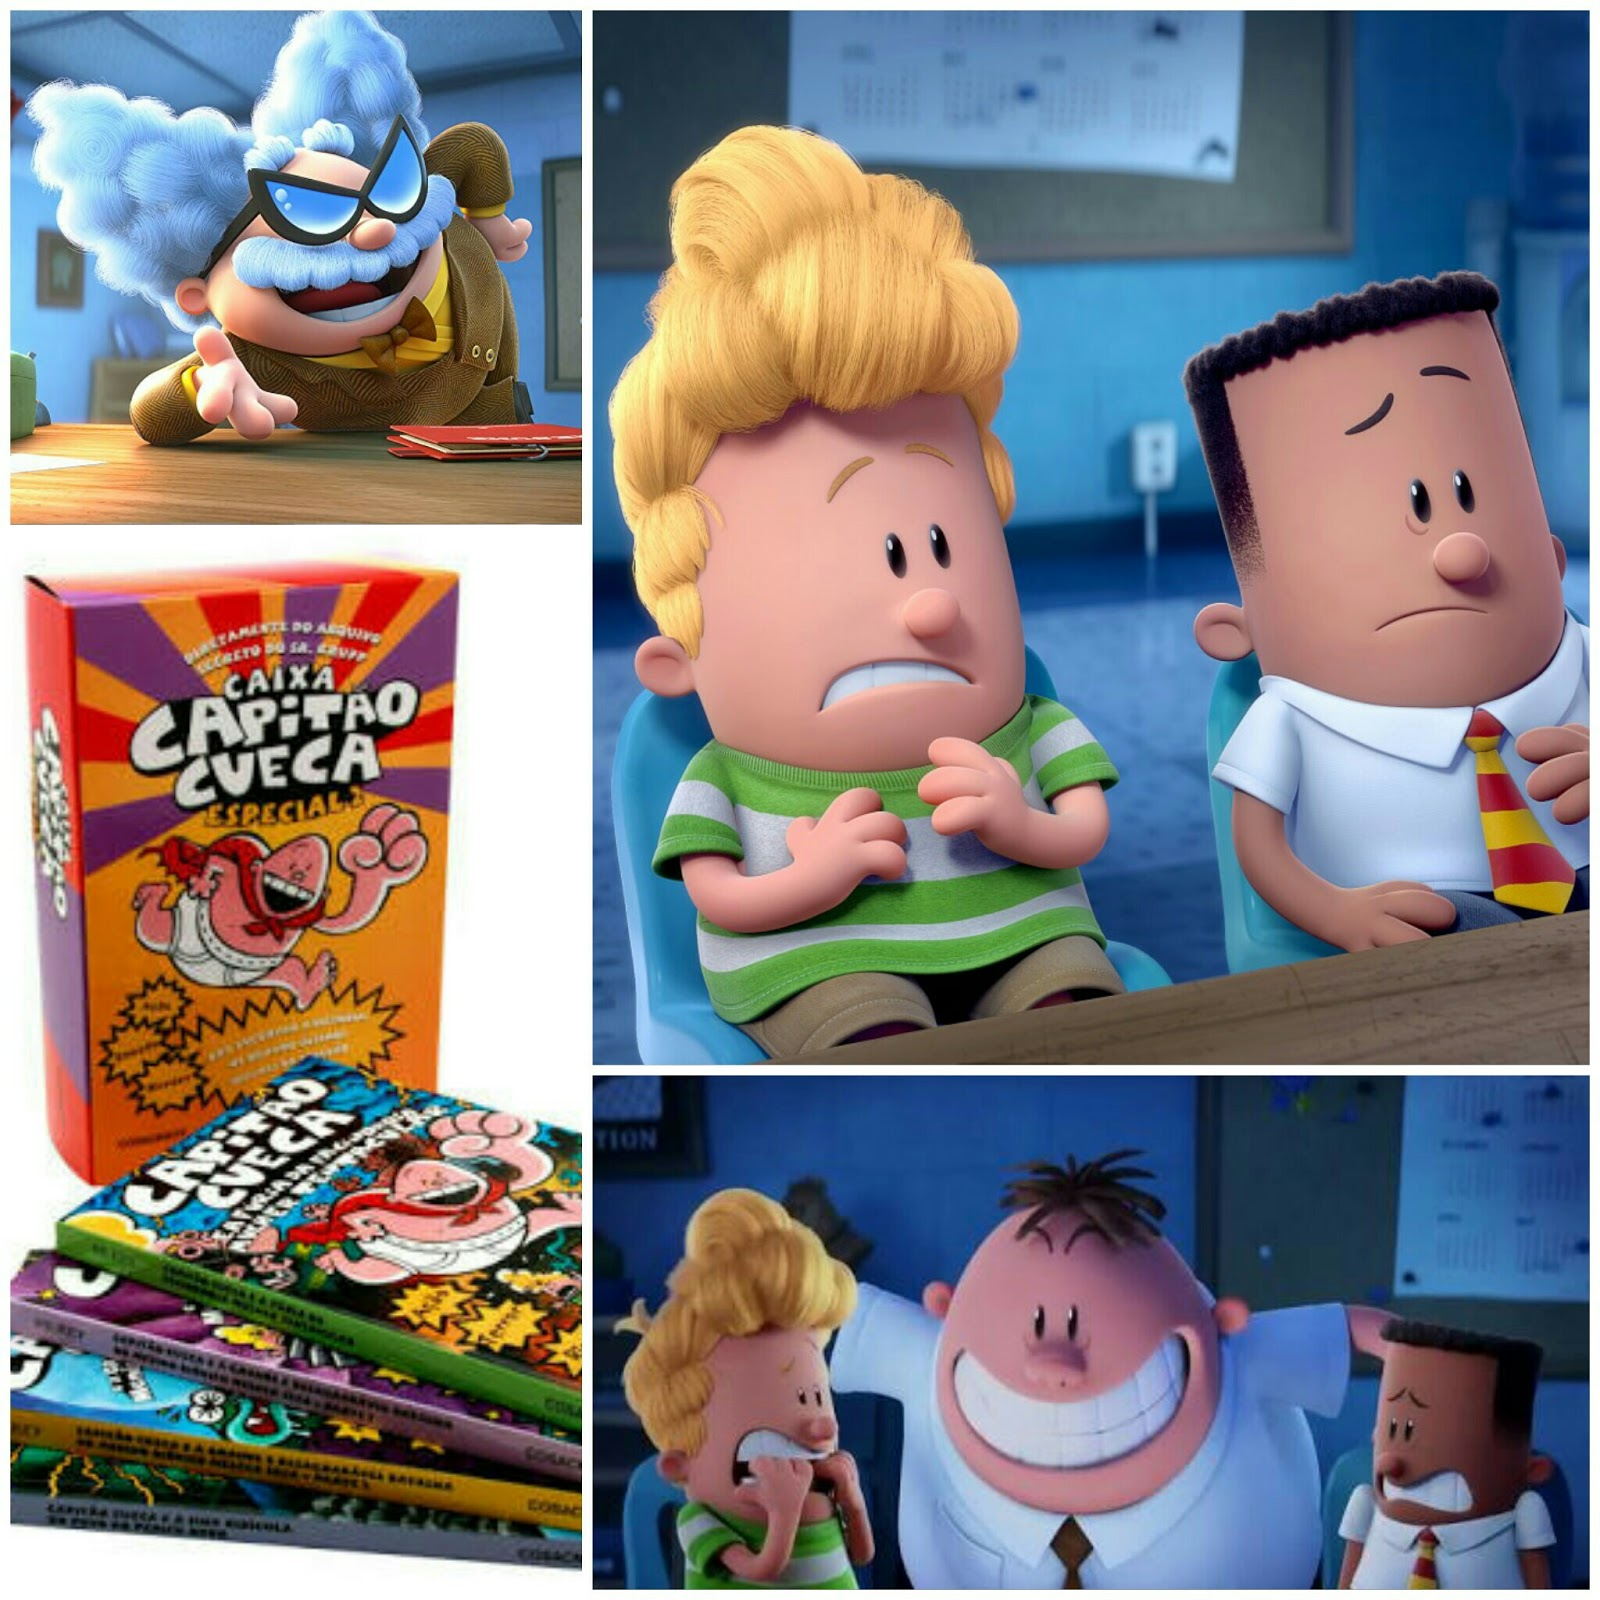 { #FILME } AS AVENTURAS DO CAPITÃO CUECA (CAPTAIN UNDERPANTS)